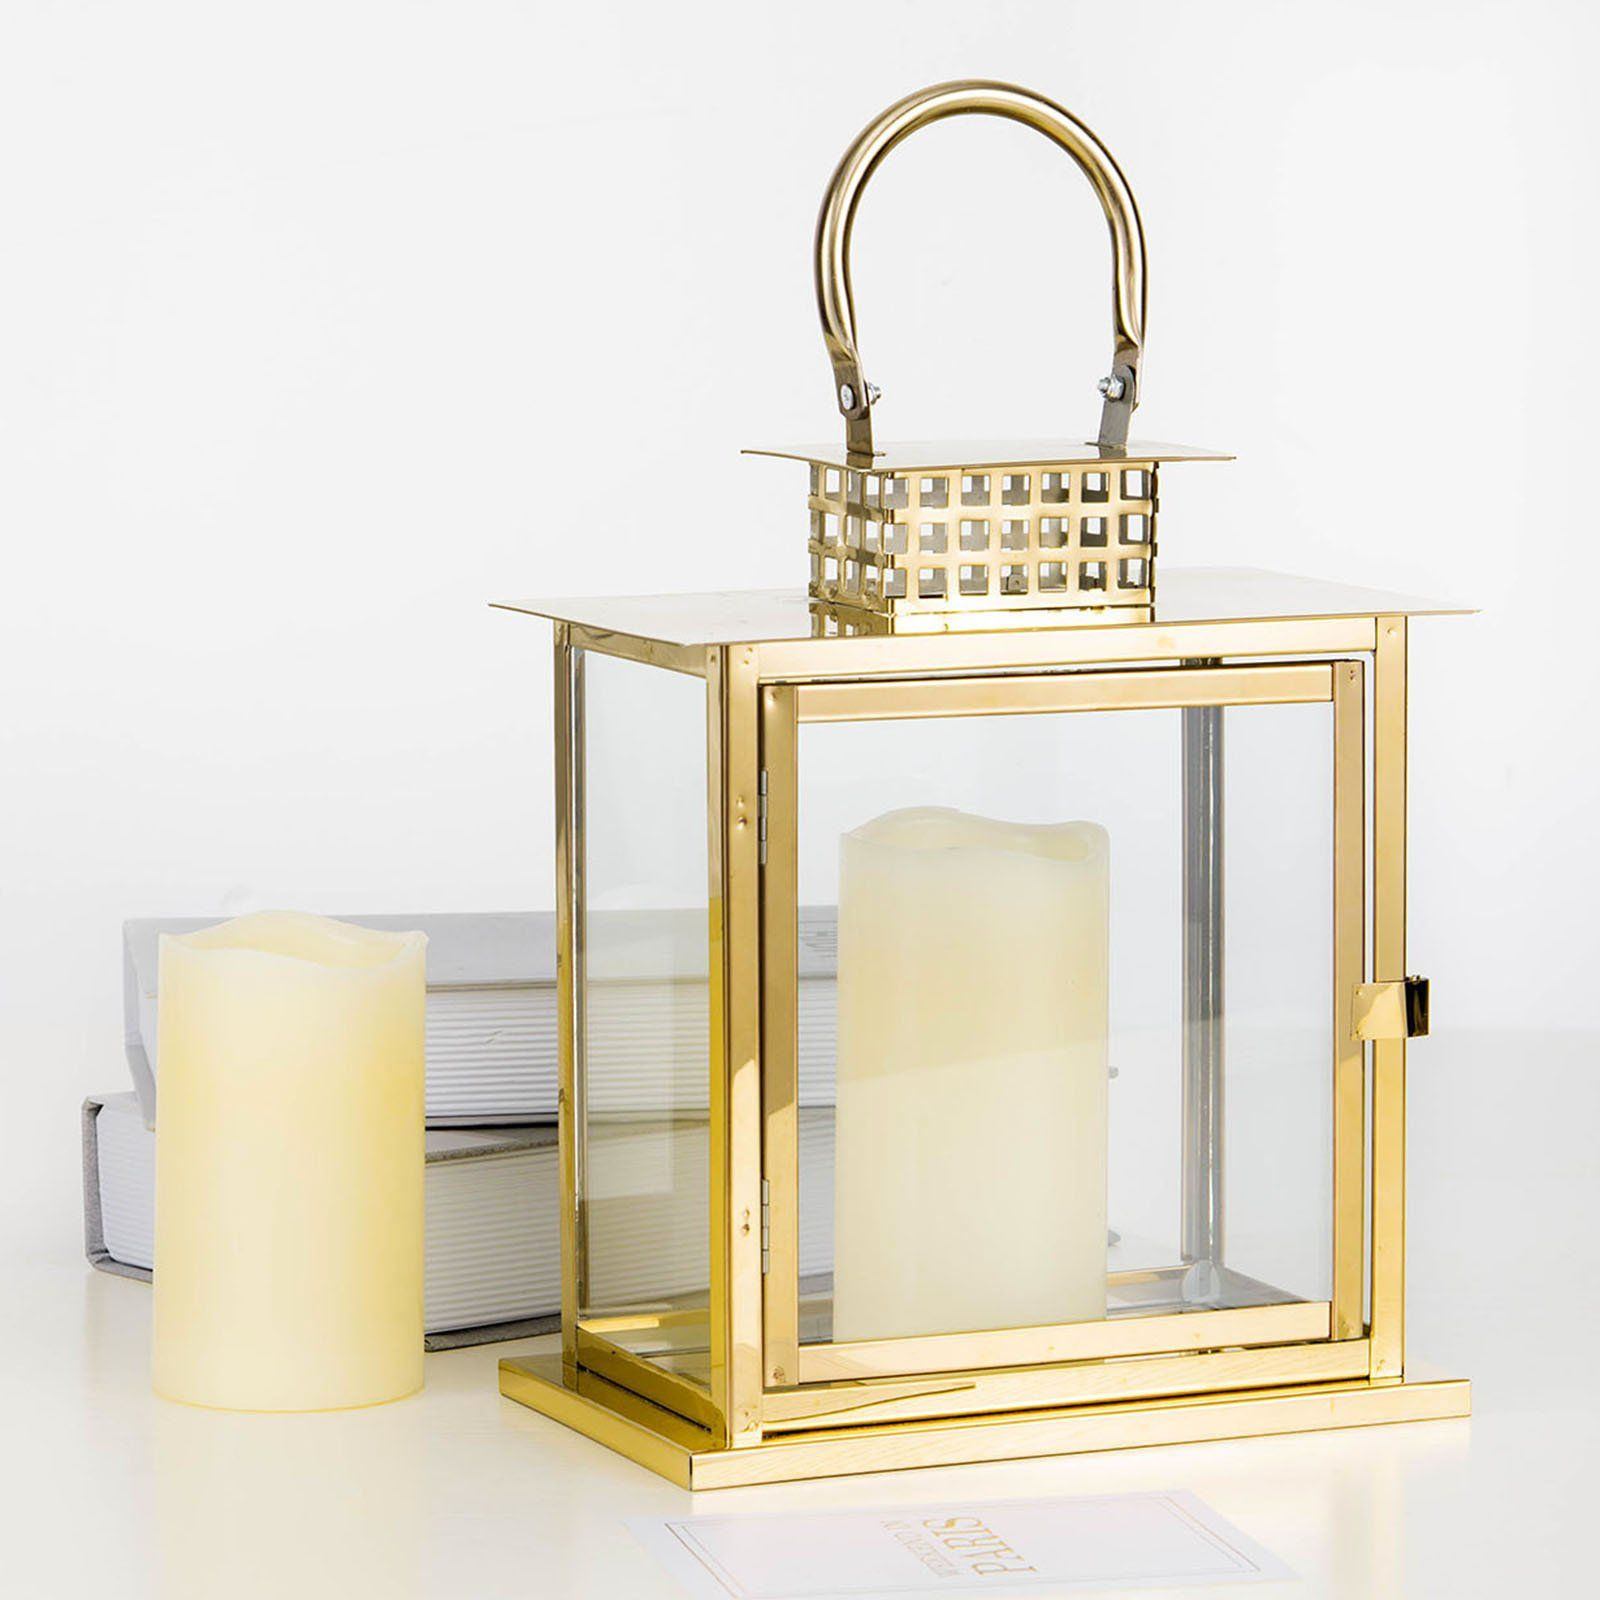 10 Gold Cage Top Stainless Steel Metal Lantern Centerpieces Outdoor Candle Lanterns In 2020 Outdoor Candle Lanterns Metal Lanterns Candle Lanterns